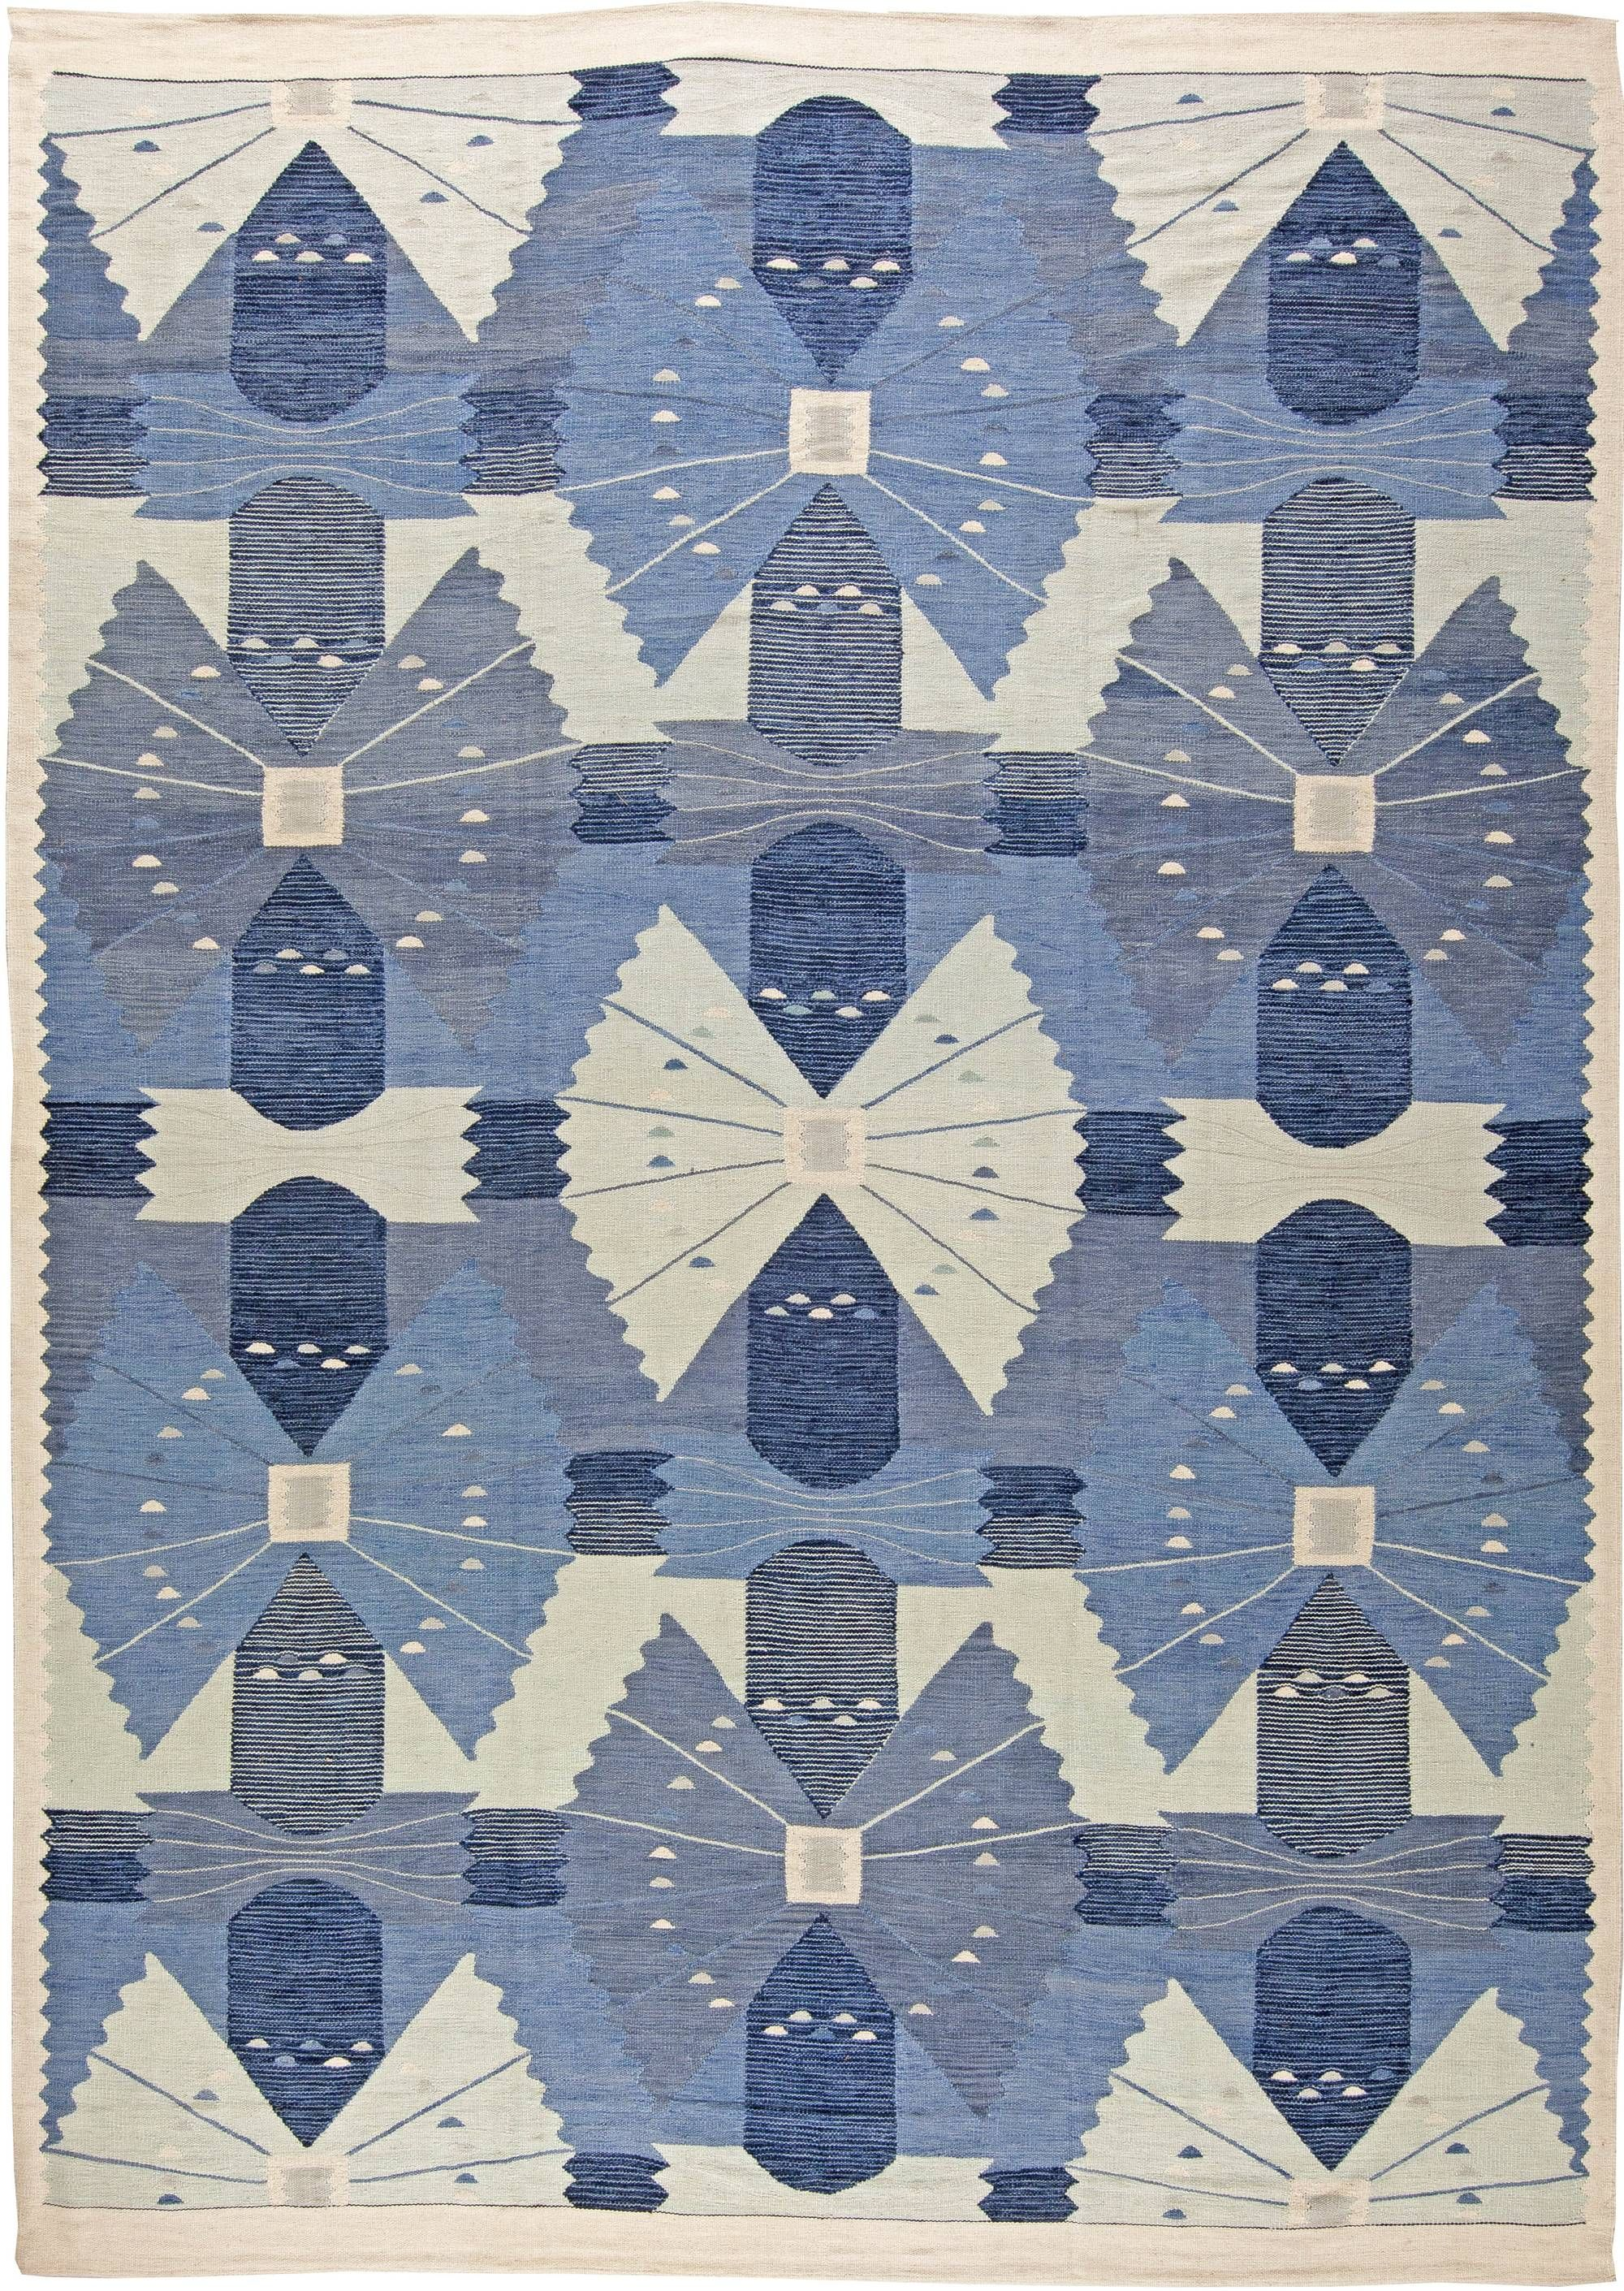 Investing In Rugs For The Home Scandinavian Interior Design Swedish